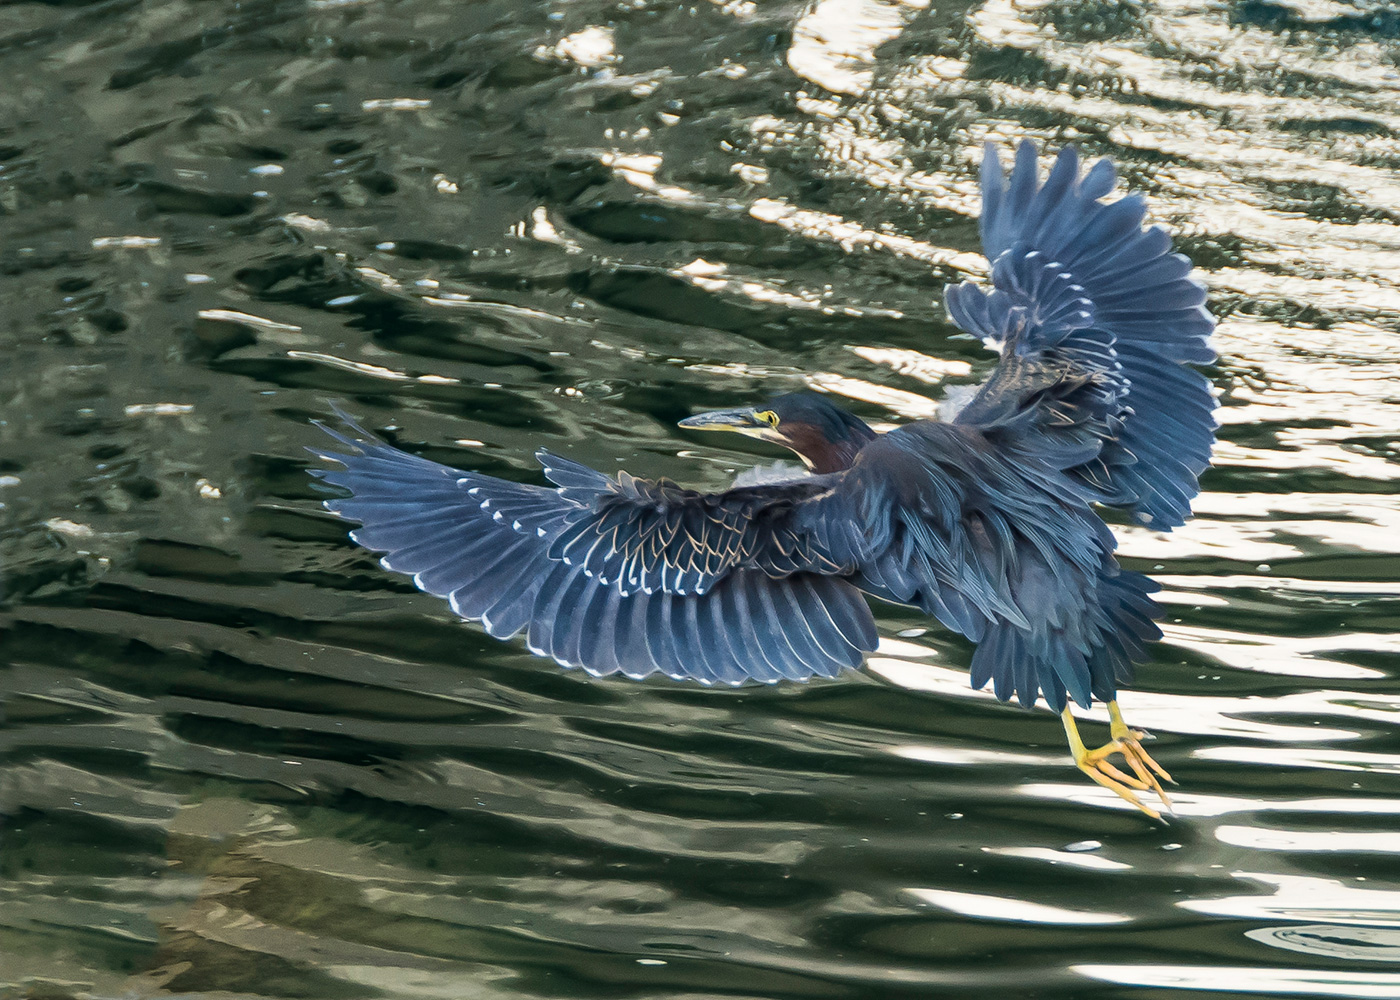 Green Heron (Butorides virescens) on an Early Morning Fishing Run by Jim Nelson